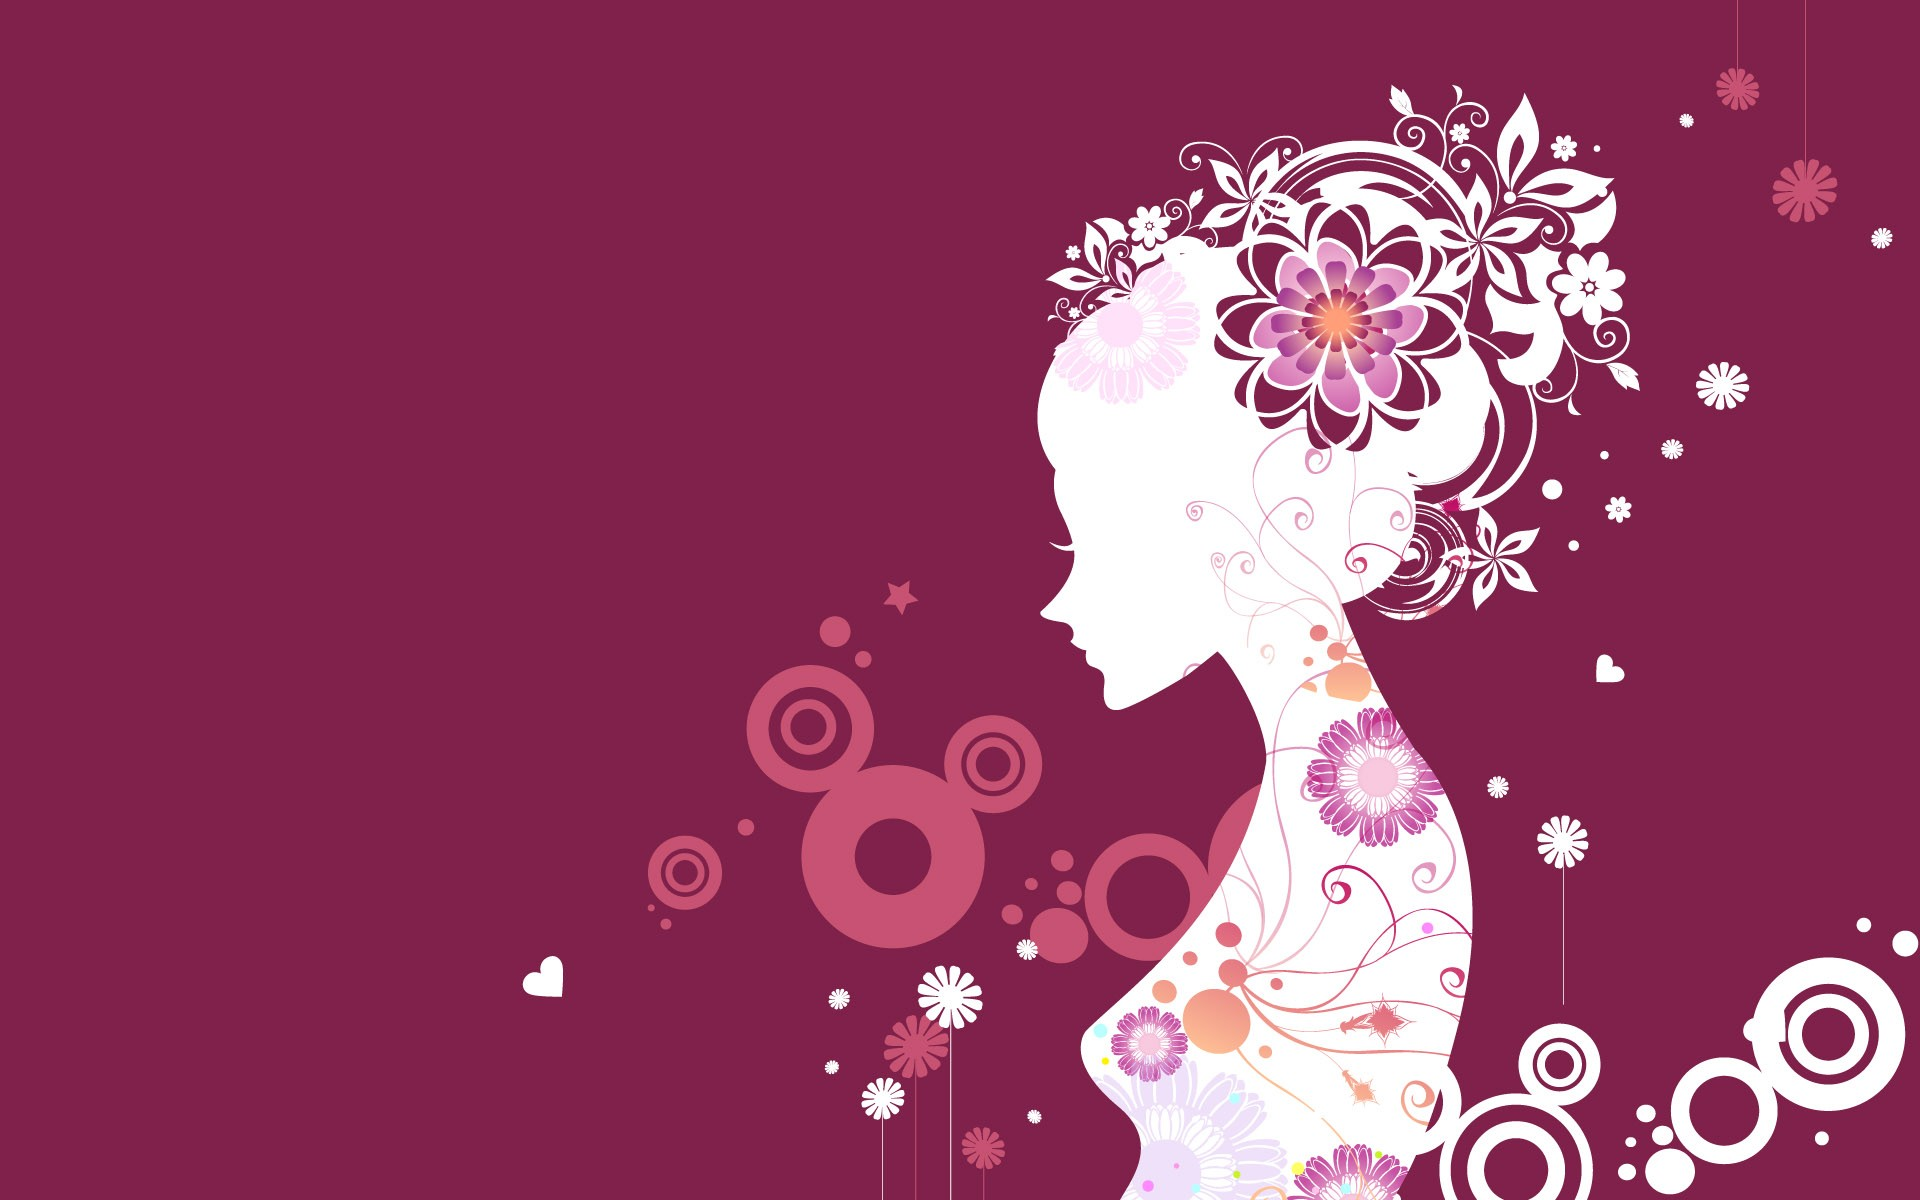 Women's Day HD Wallpaper